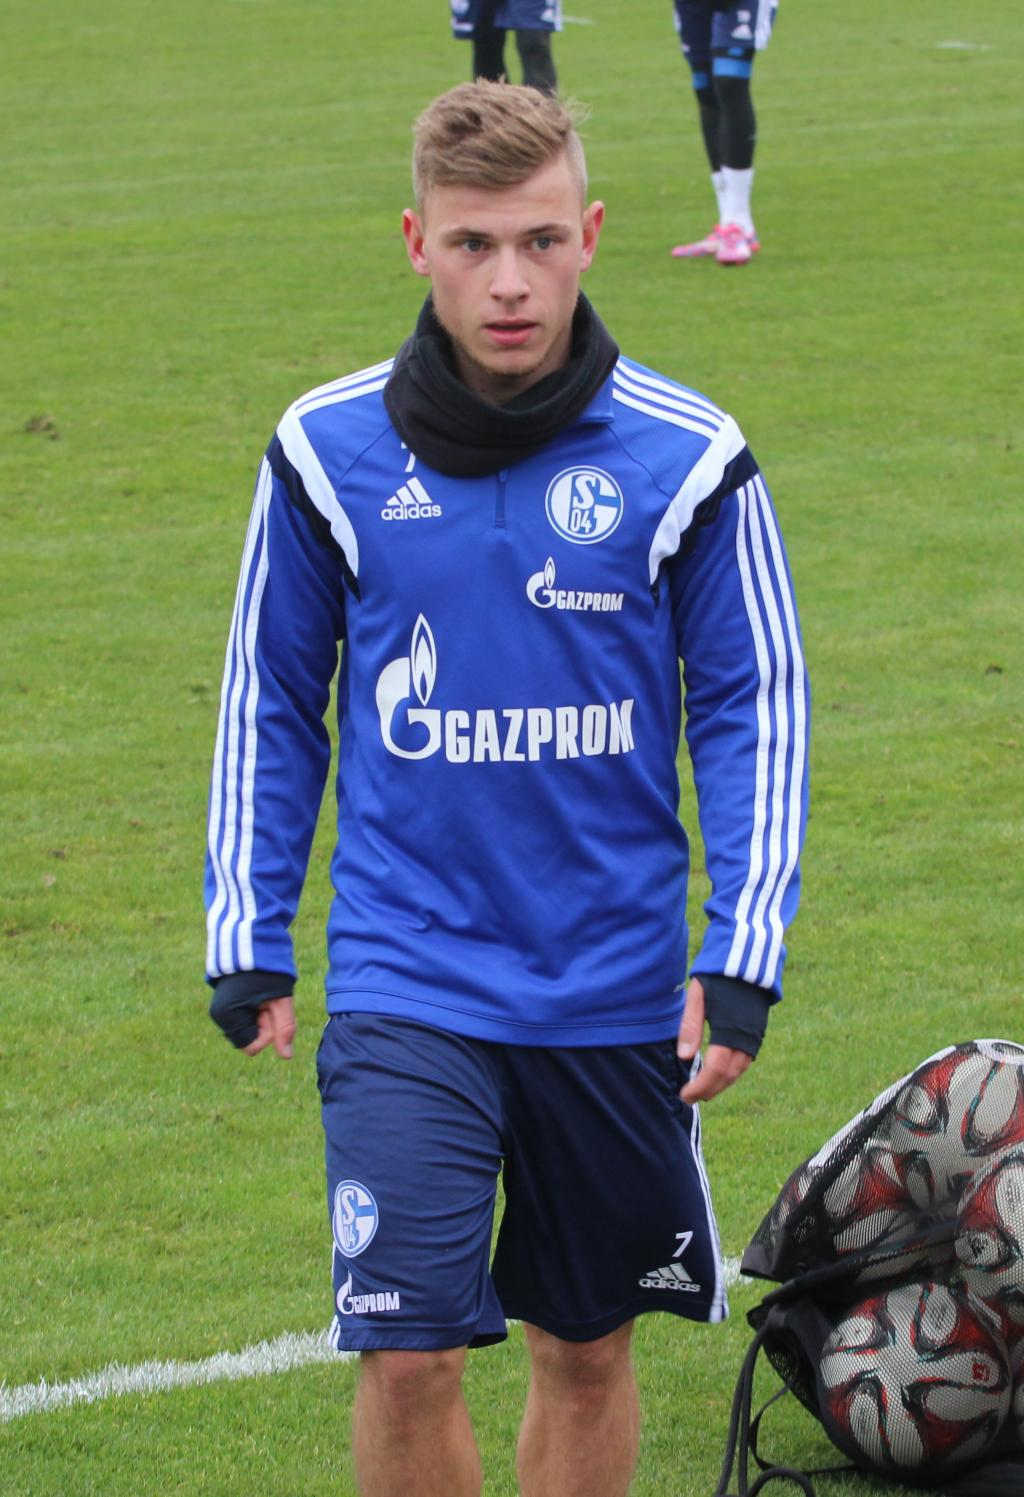 File:Max Meyer S04 2015.jpg - Wikimedia Commons